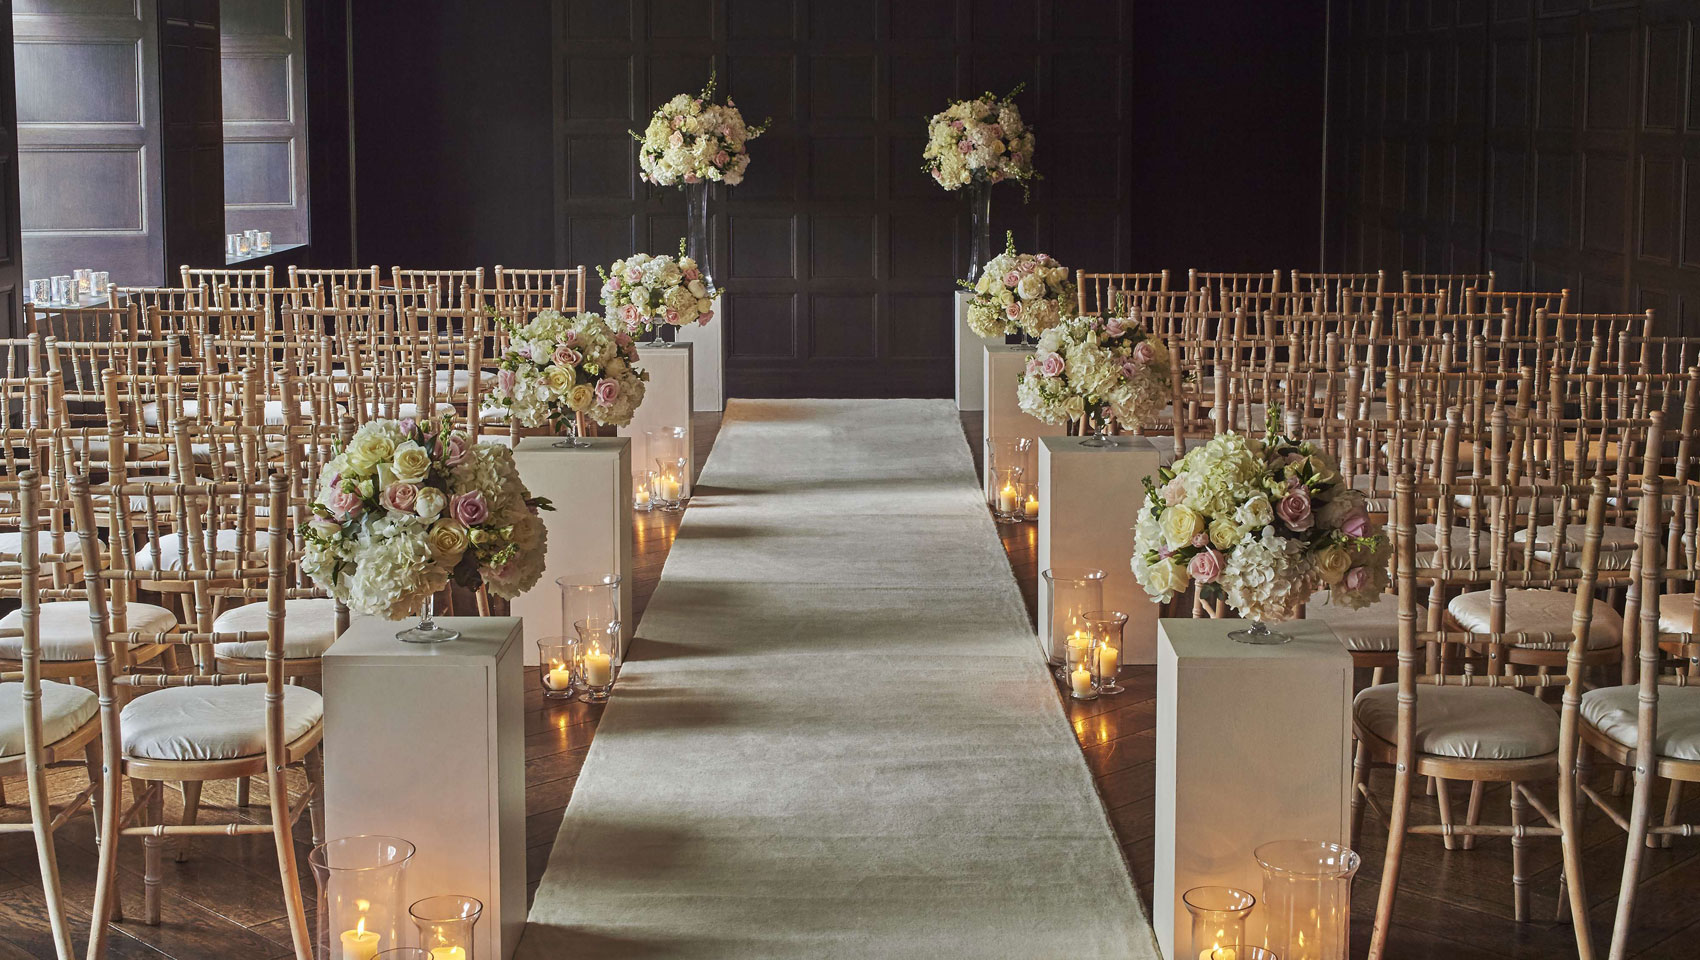 Blythswood Square Wedding